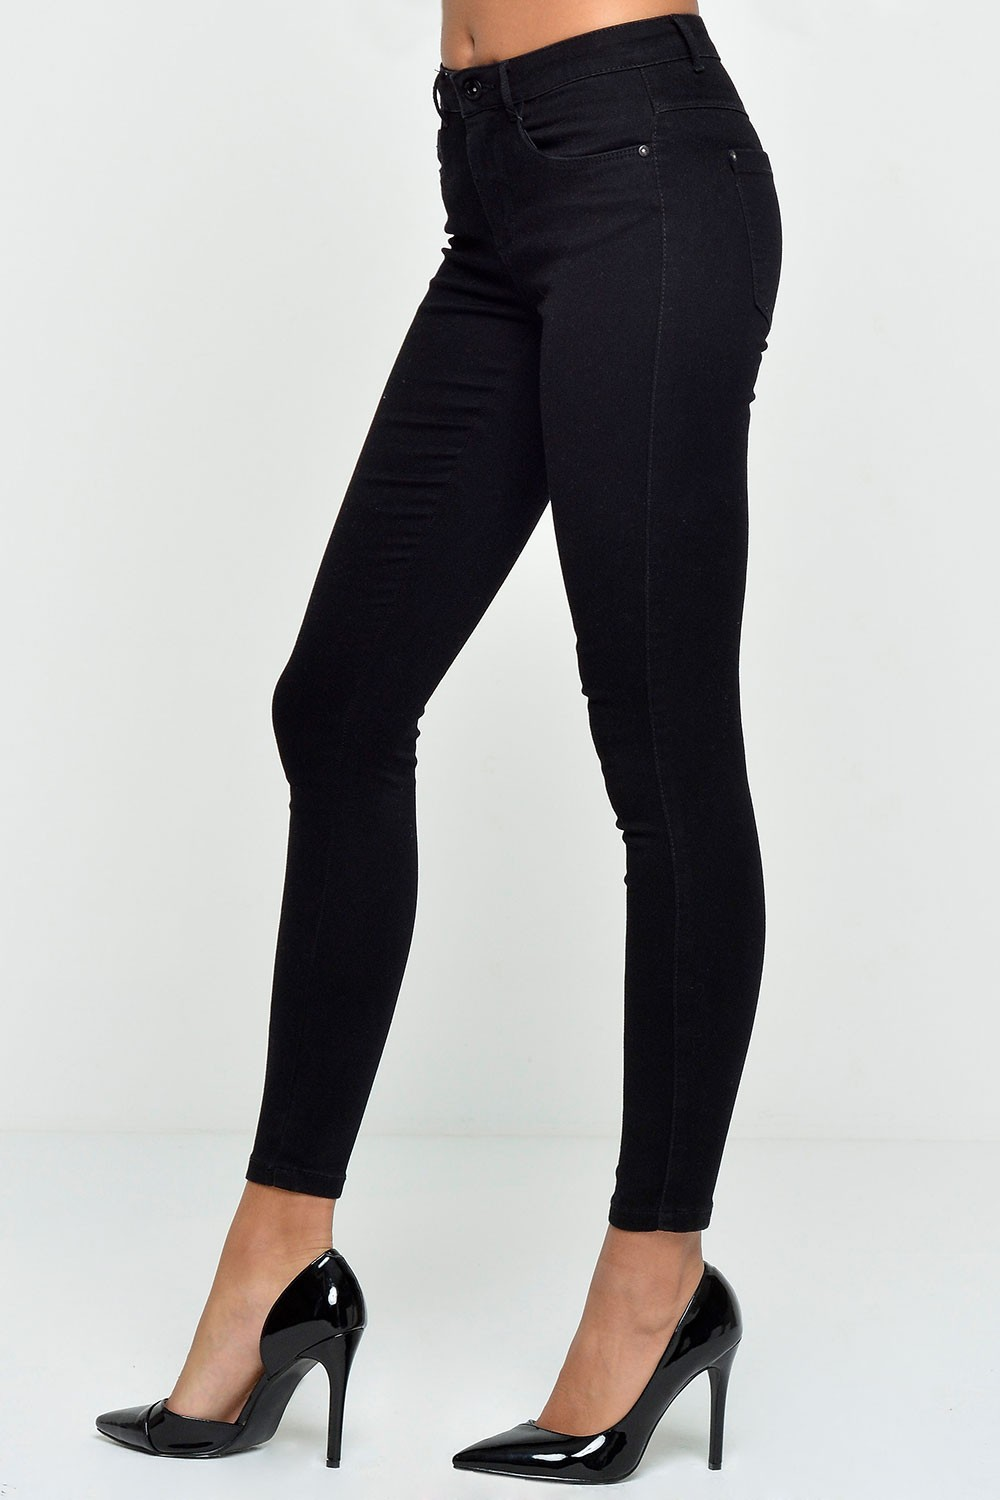 Only Royal Short Length Skinny Jeans in Black | iCLOTHING